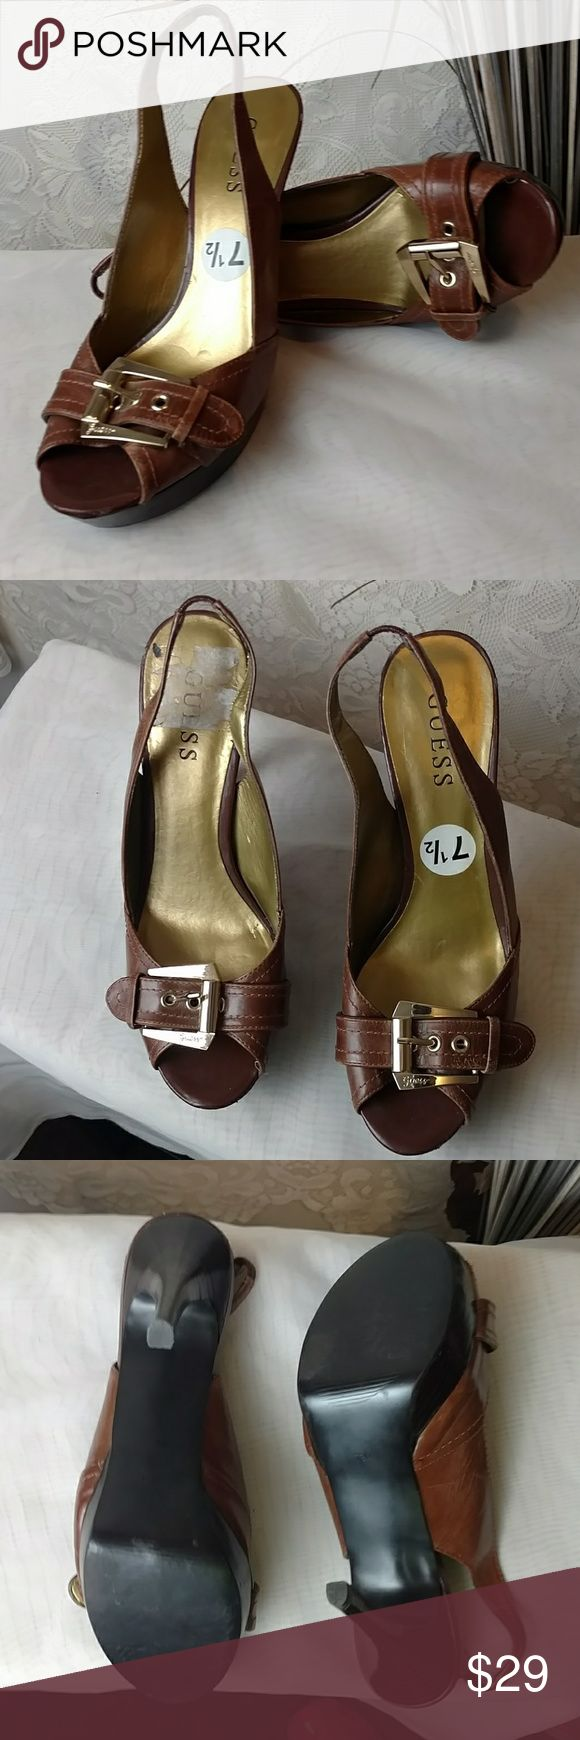 Guess peep toe heels Brown peep toe heels by Guess. Have gold buckle accent. Only wear is trying to get sticker off. Worn only few times. Cute with jeans and suits. Guess Shoes Heels